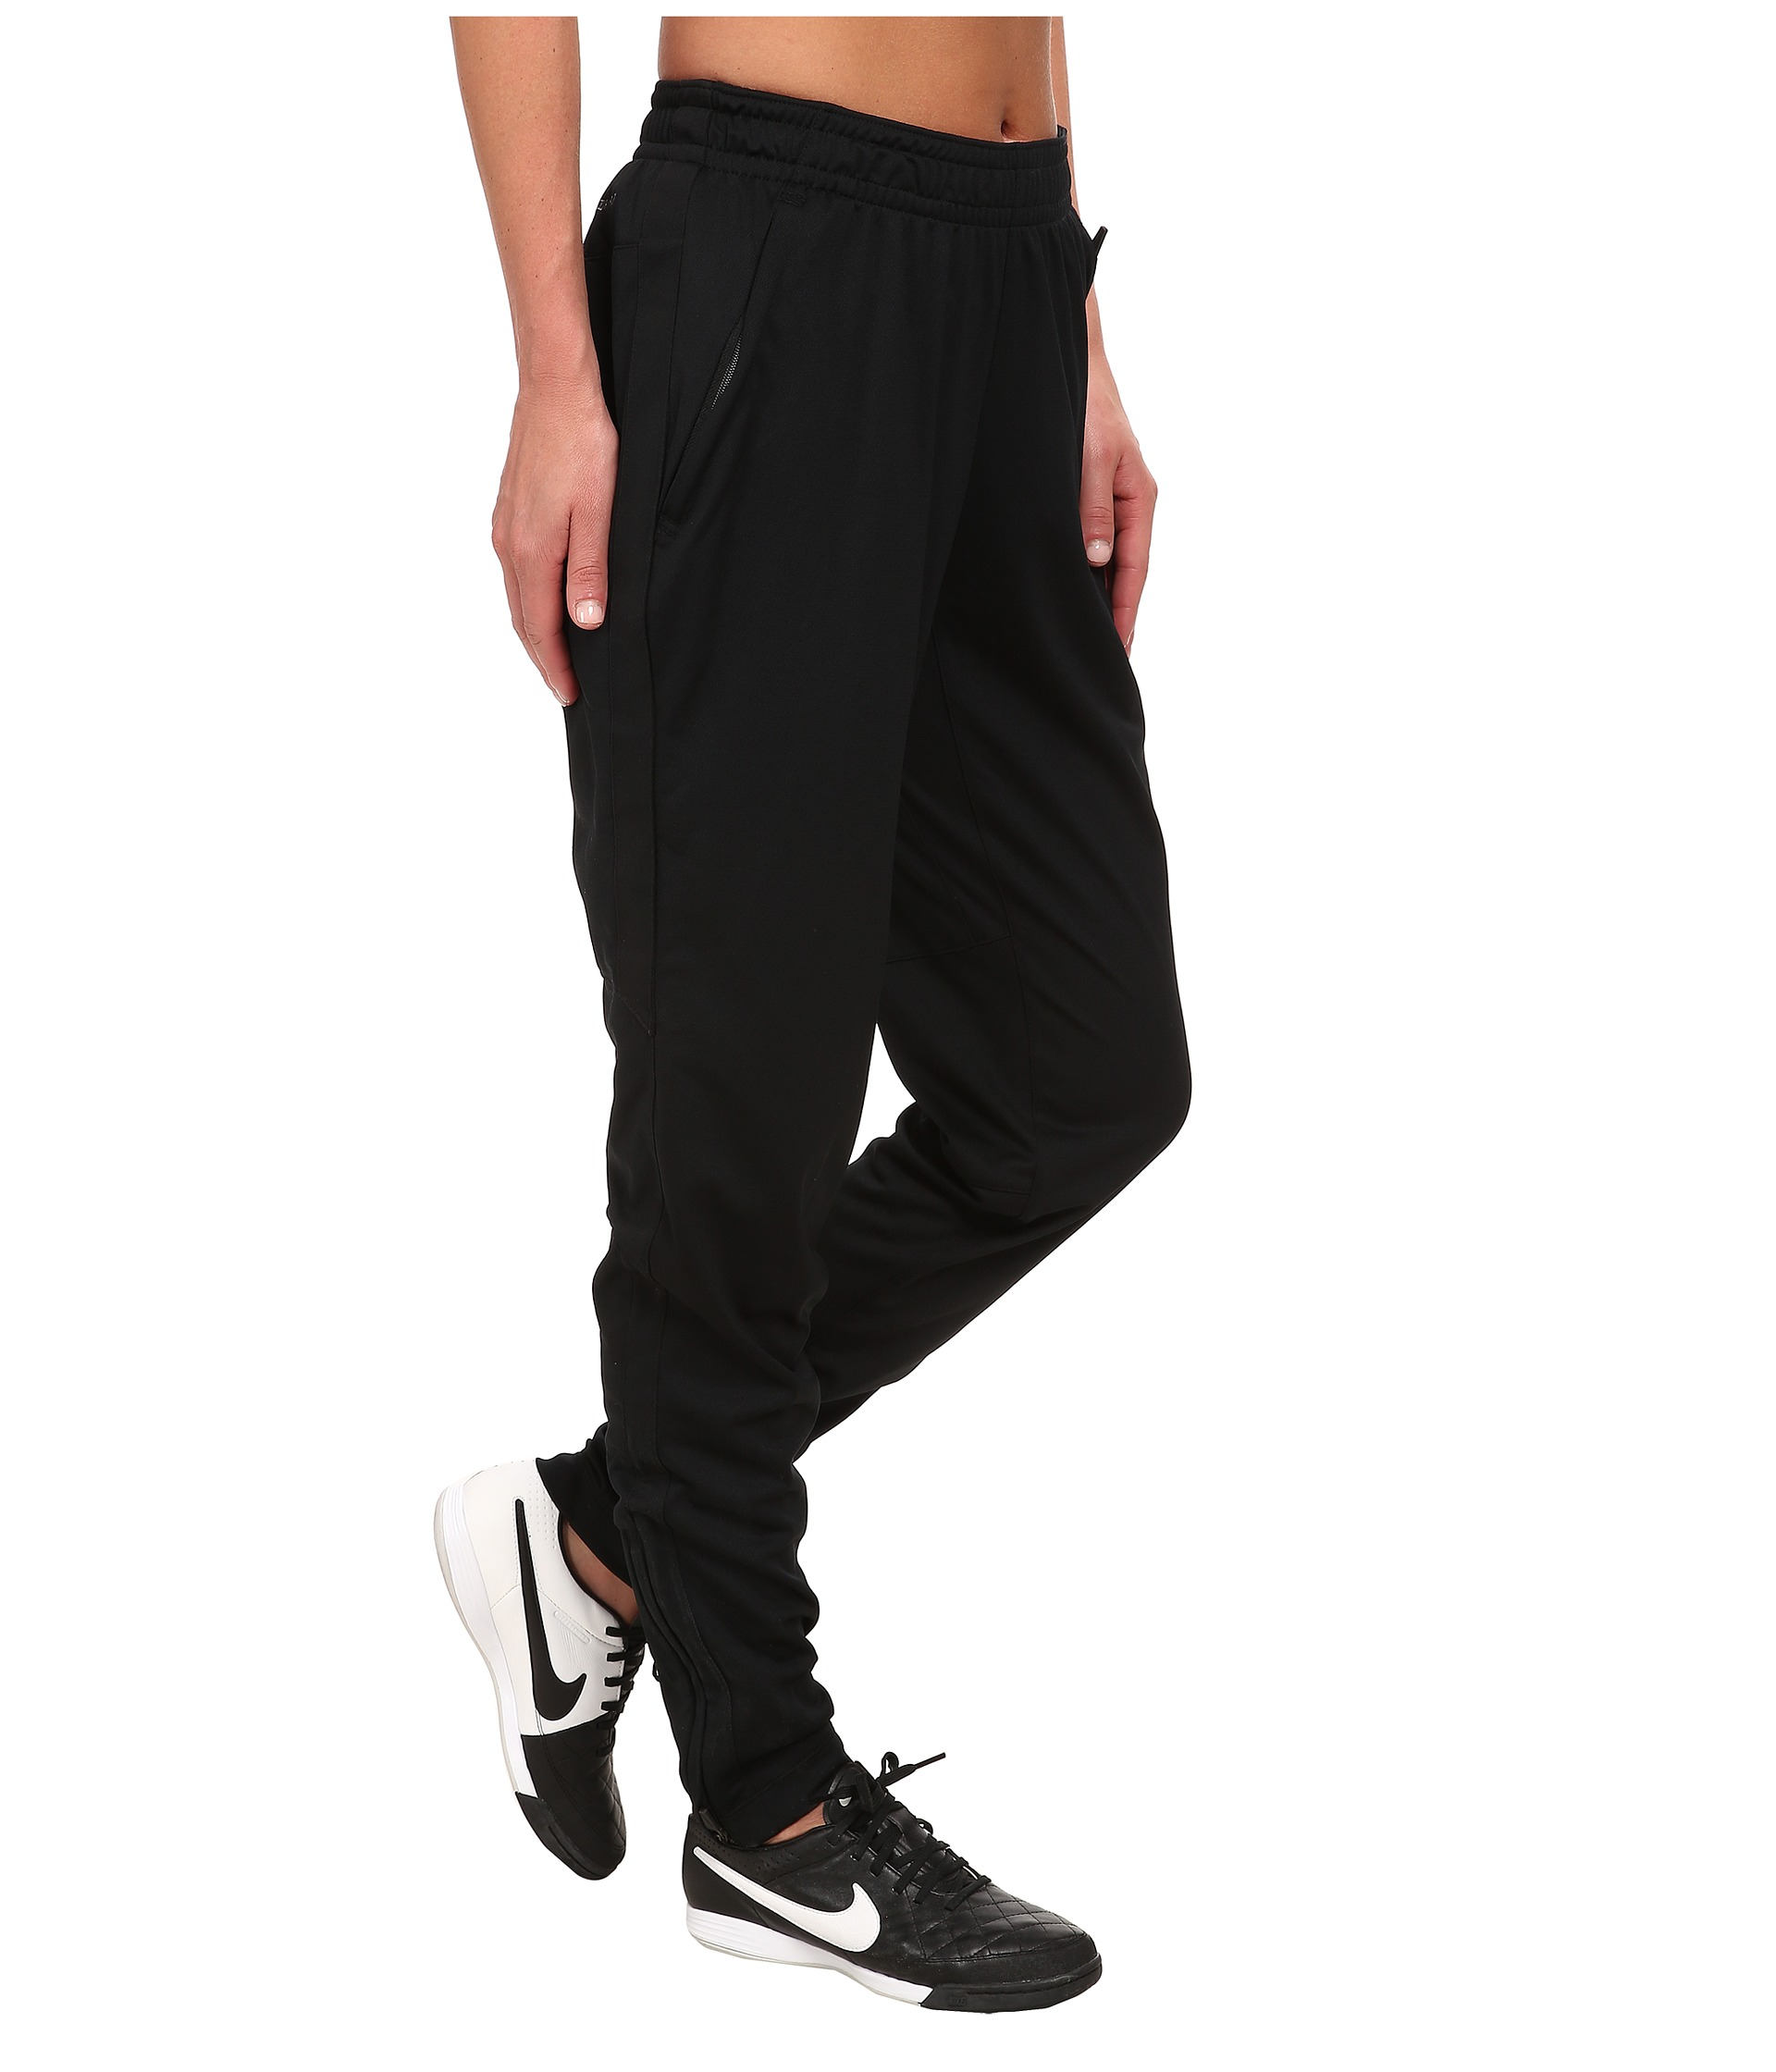 nike academy knit soccer pant at. Black Bedroom Furniture Sets. Home Design Ideas